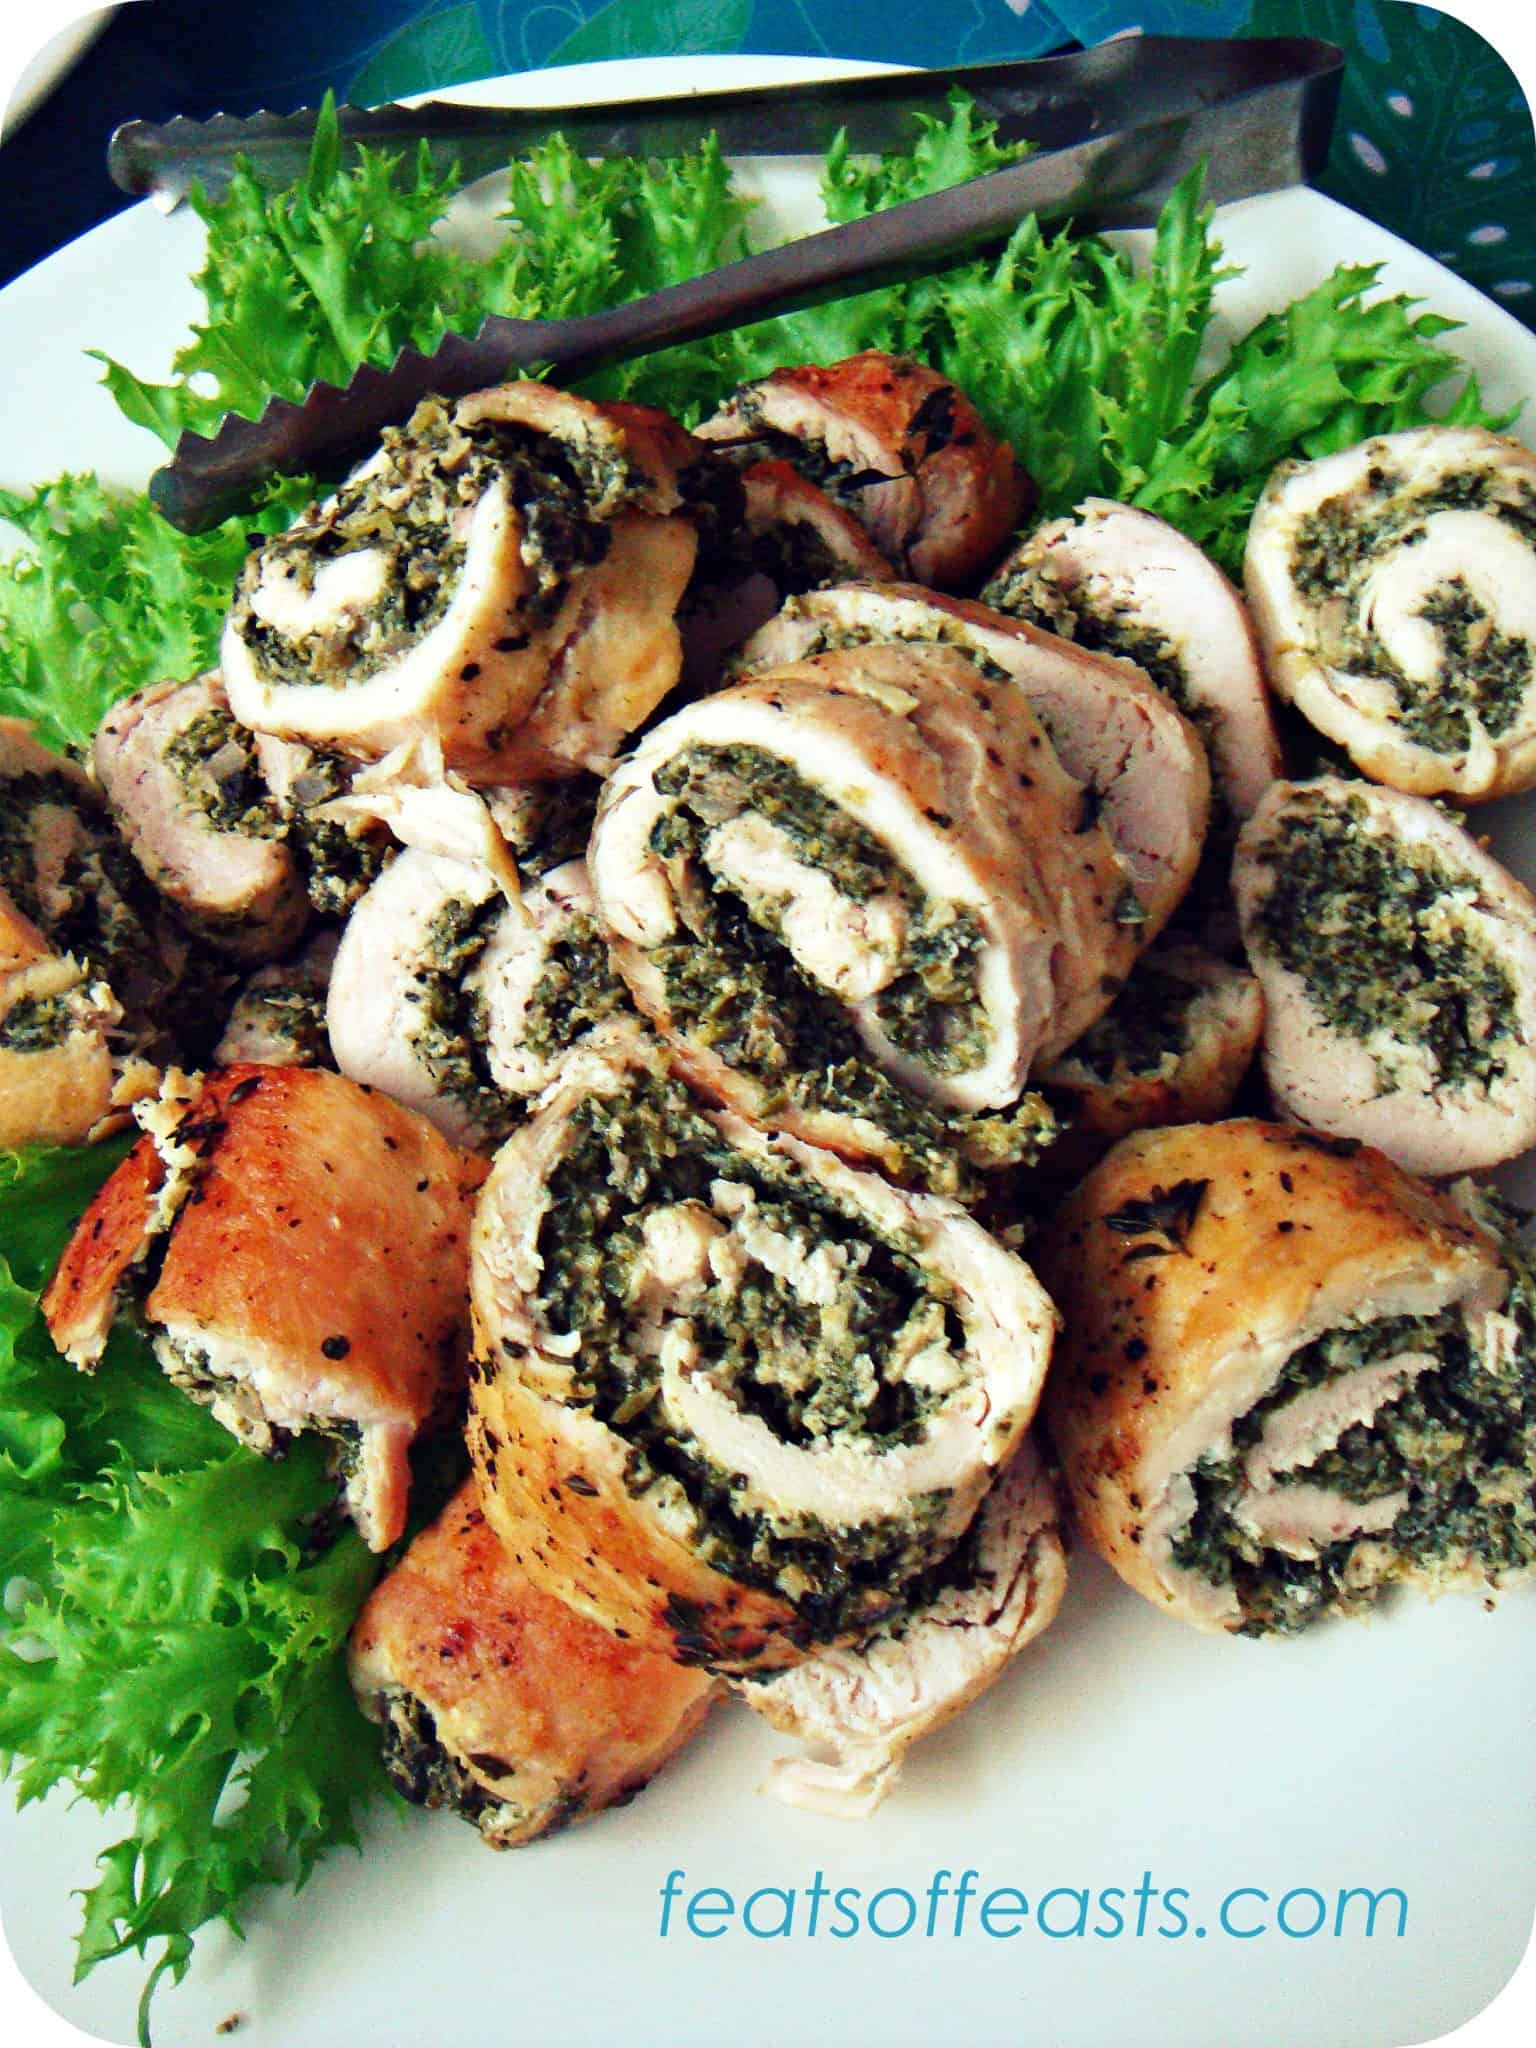 A long, overdued meet and Chicken Roulade